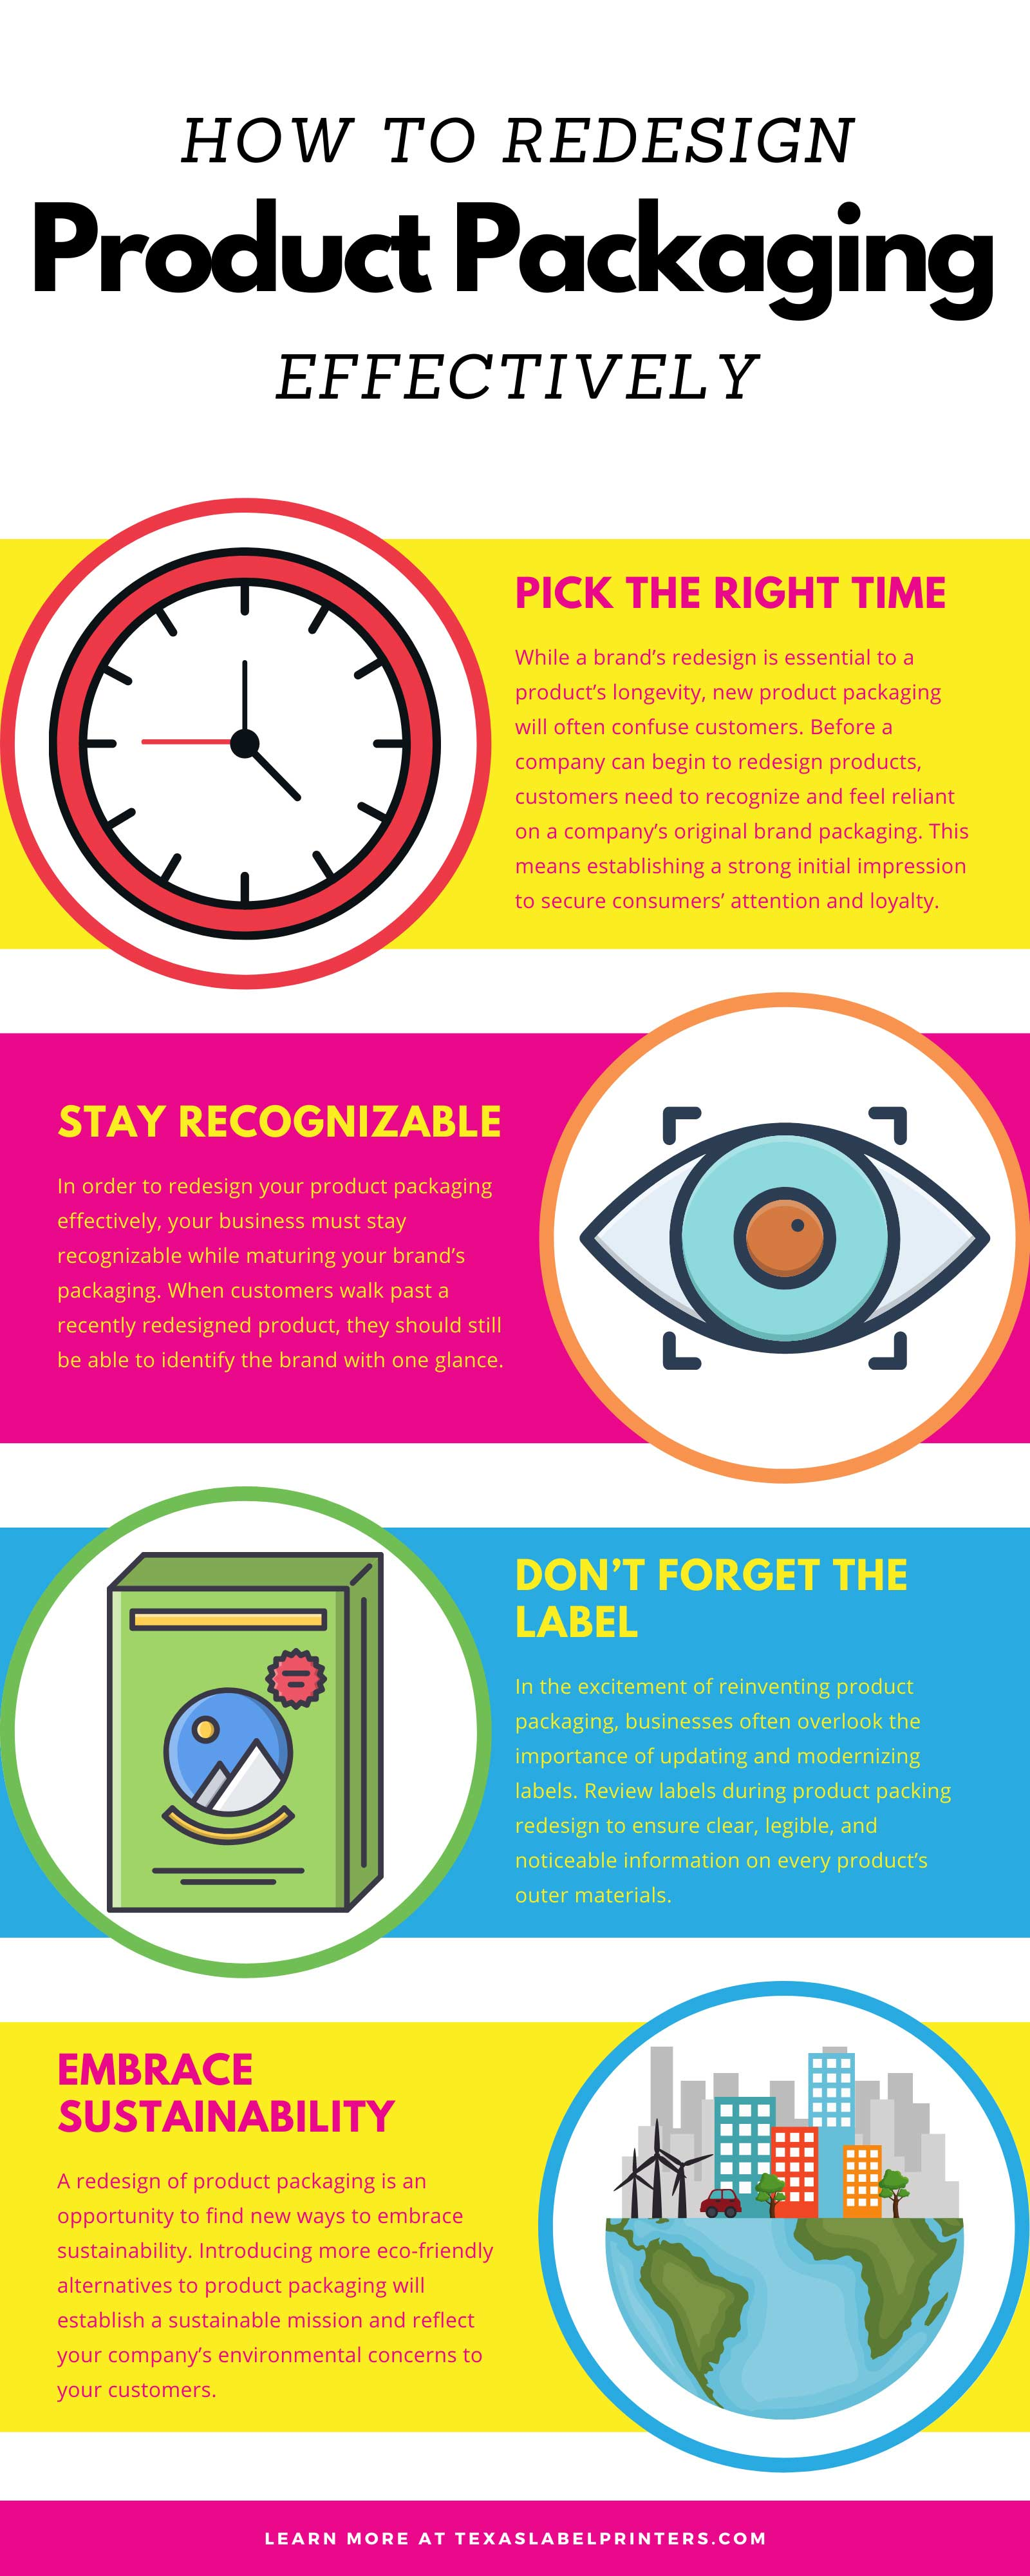 How To Redesign Product Packaging Effectively Infographic